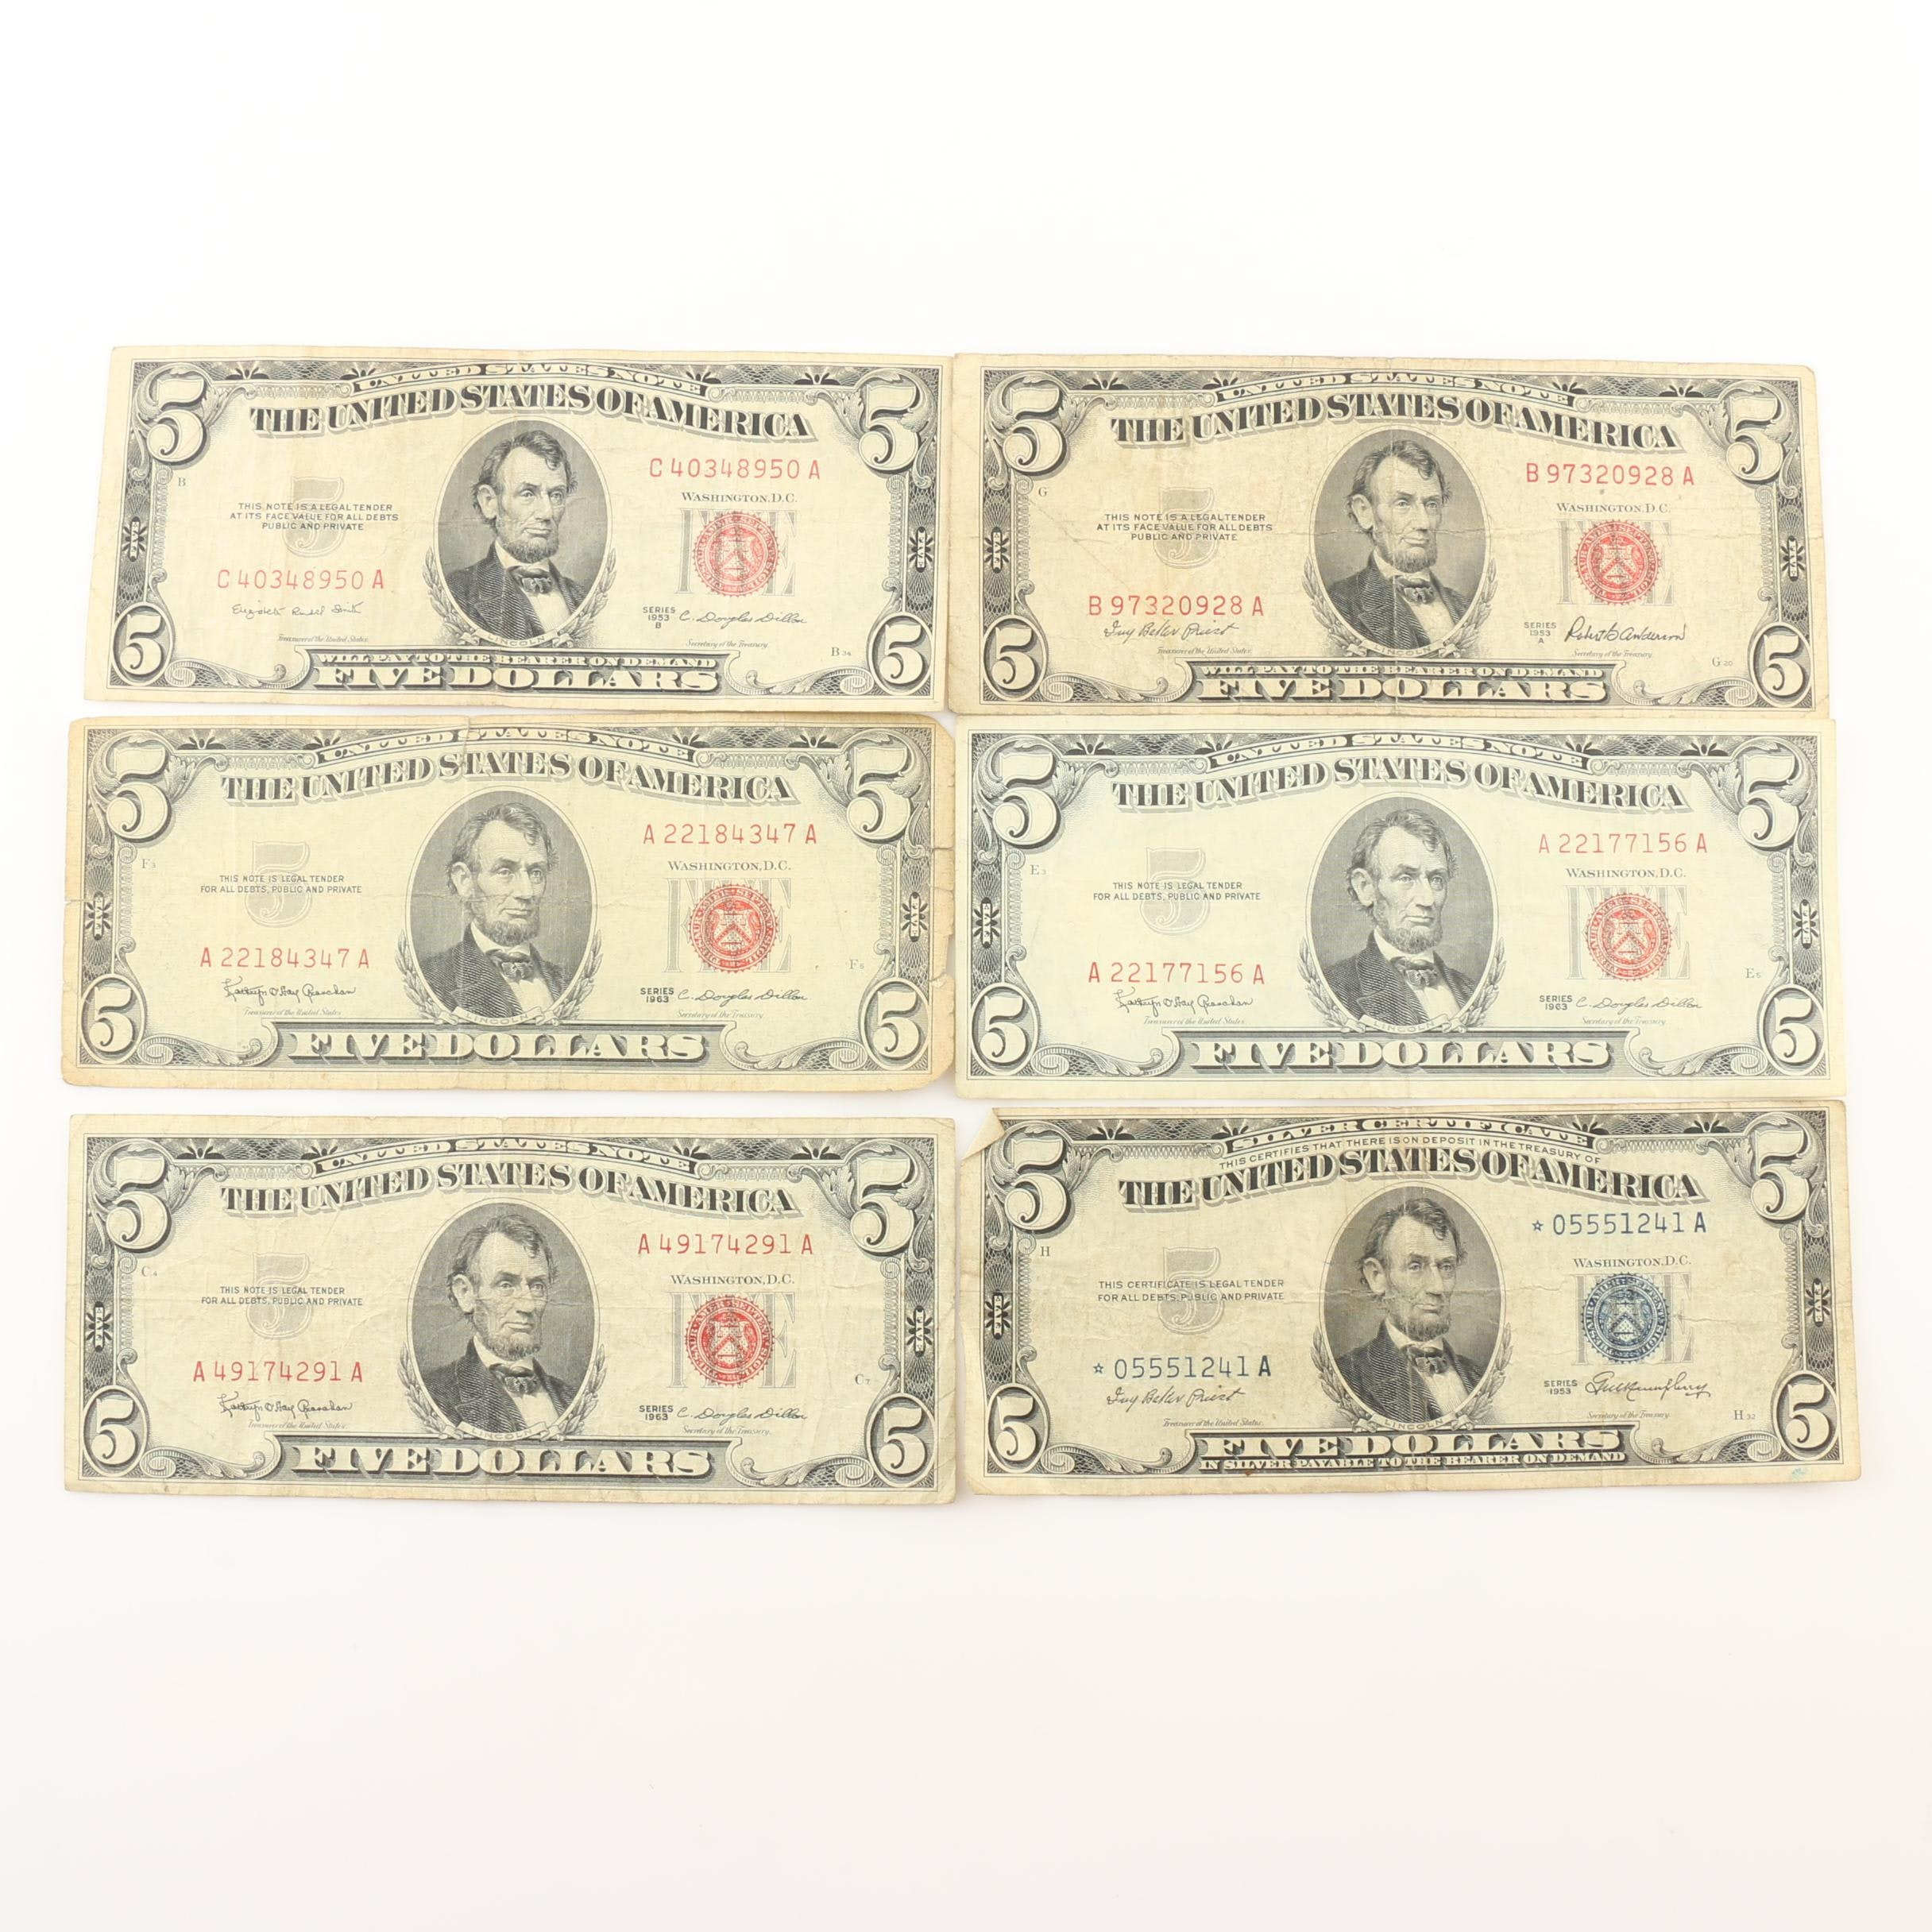 Group of Six $5 U.S. Currency Notes from 1953 and 1963